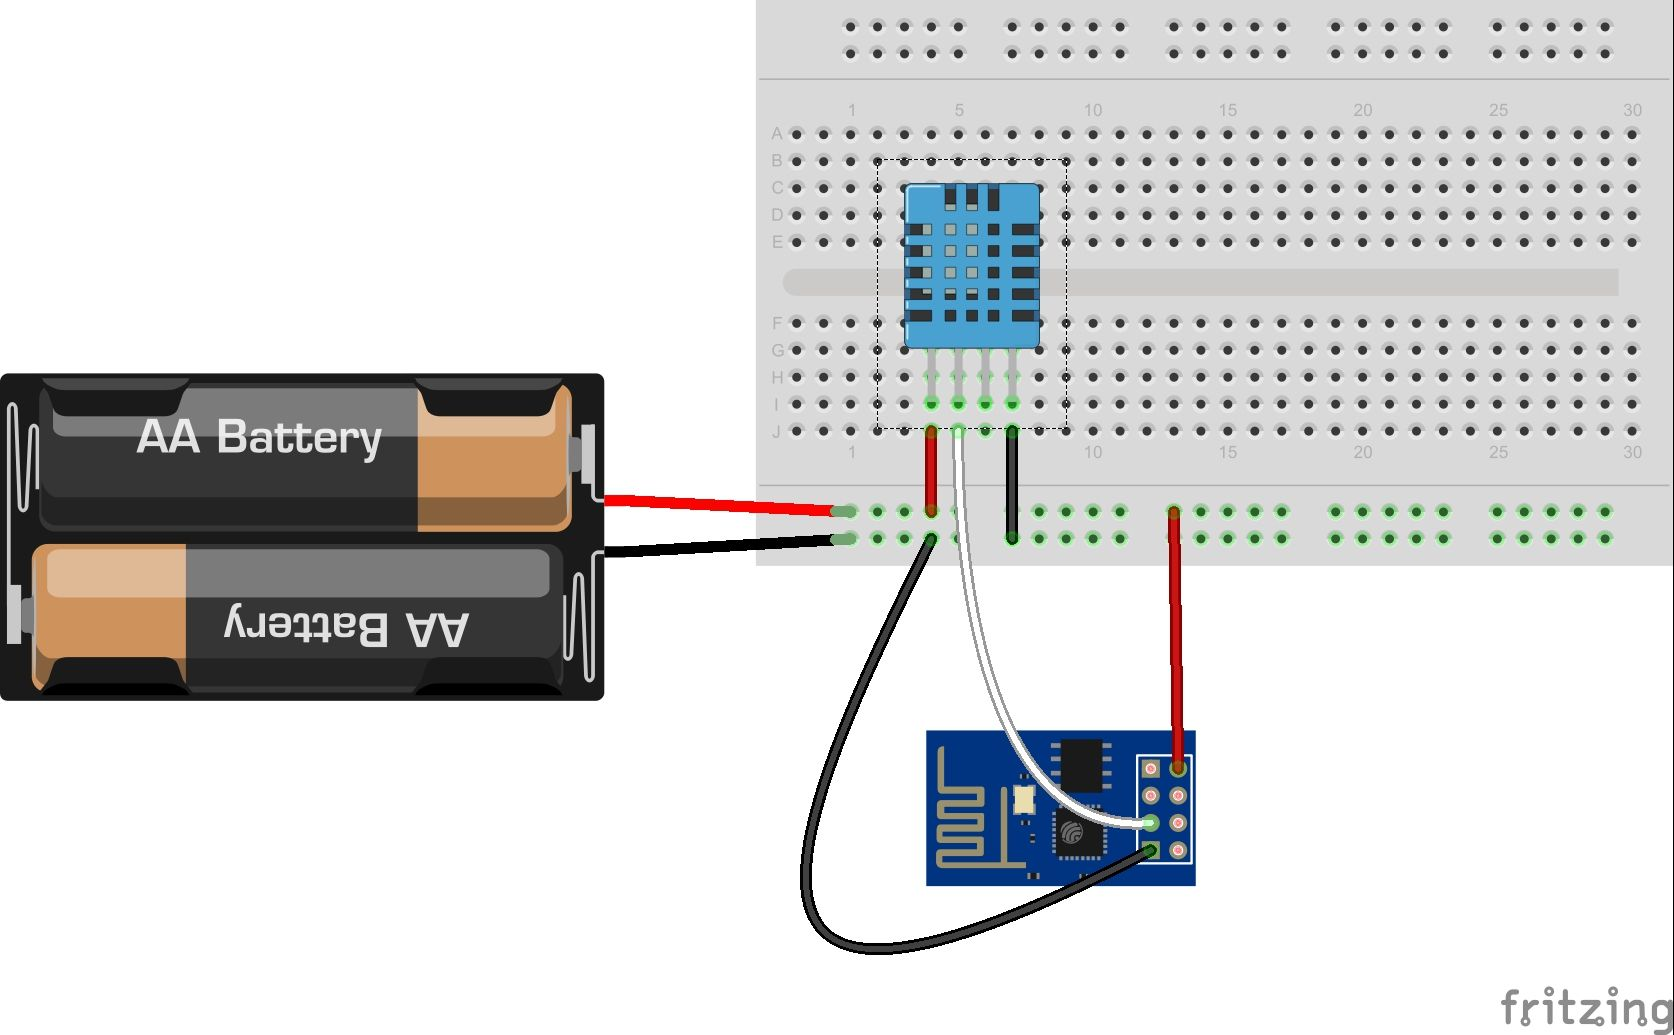 ESP01 thingspeak DTH11 | IOT | Arduino, Electronics projects